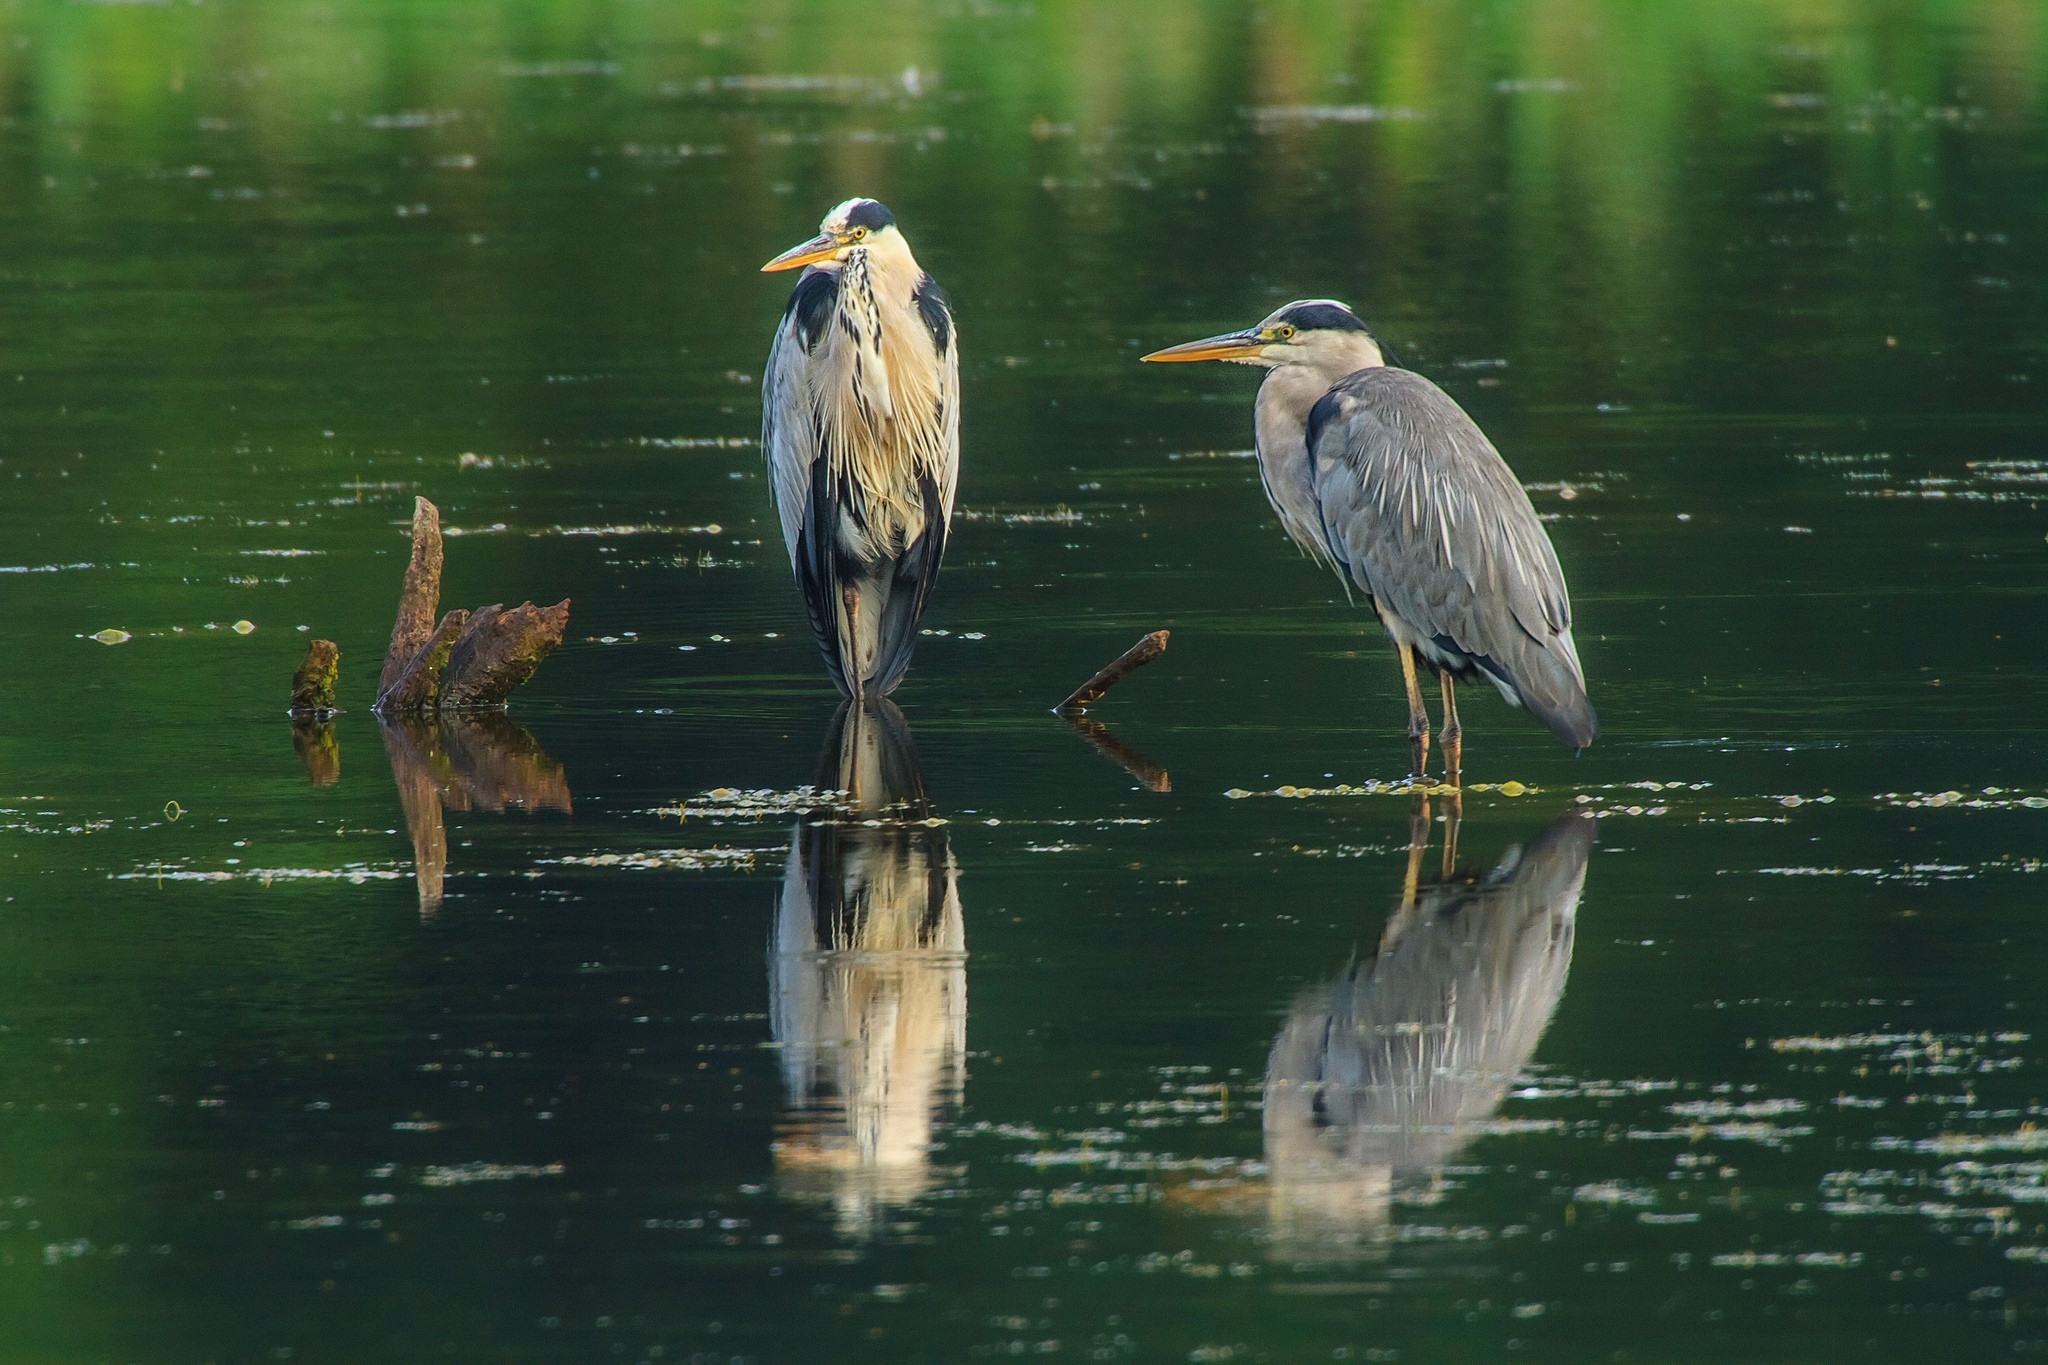 Res: 2048x1365, animals, Nature, Herons, Birds, Water Wallpapers HD / Desktop and Mobile  Backgrounds